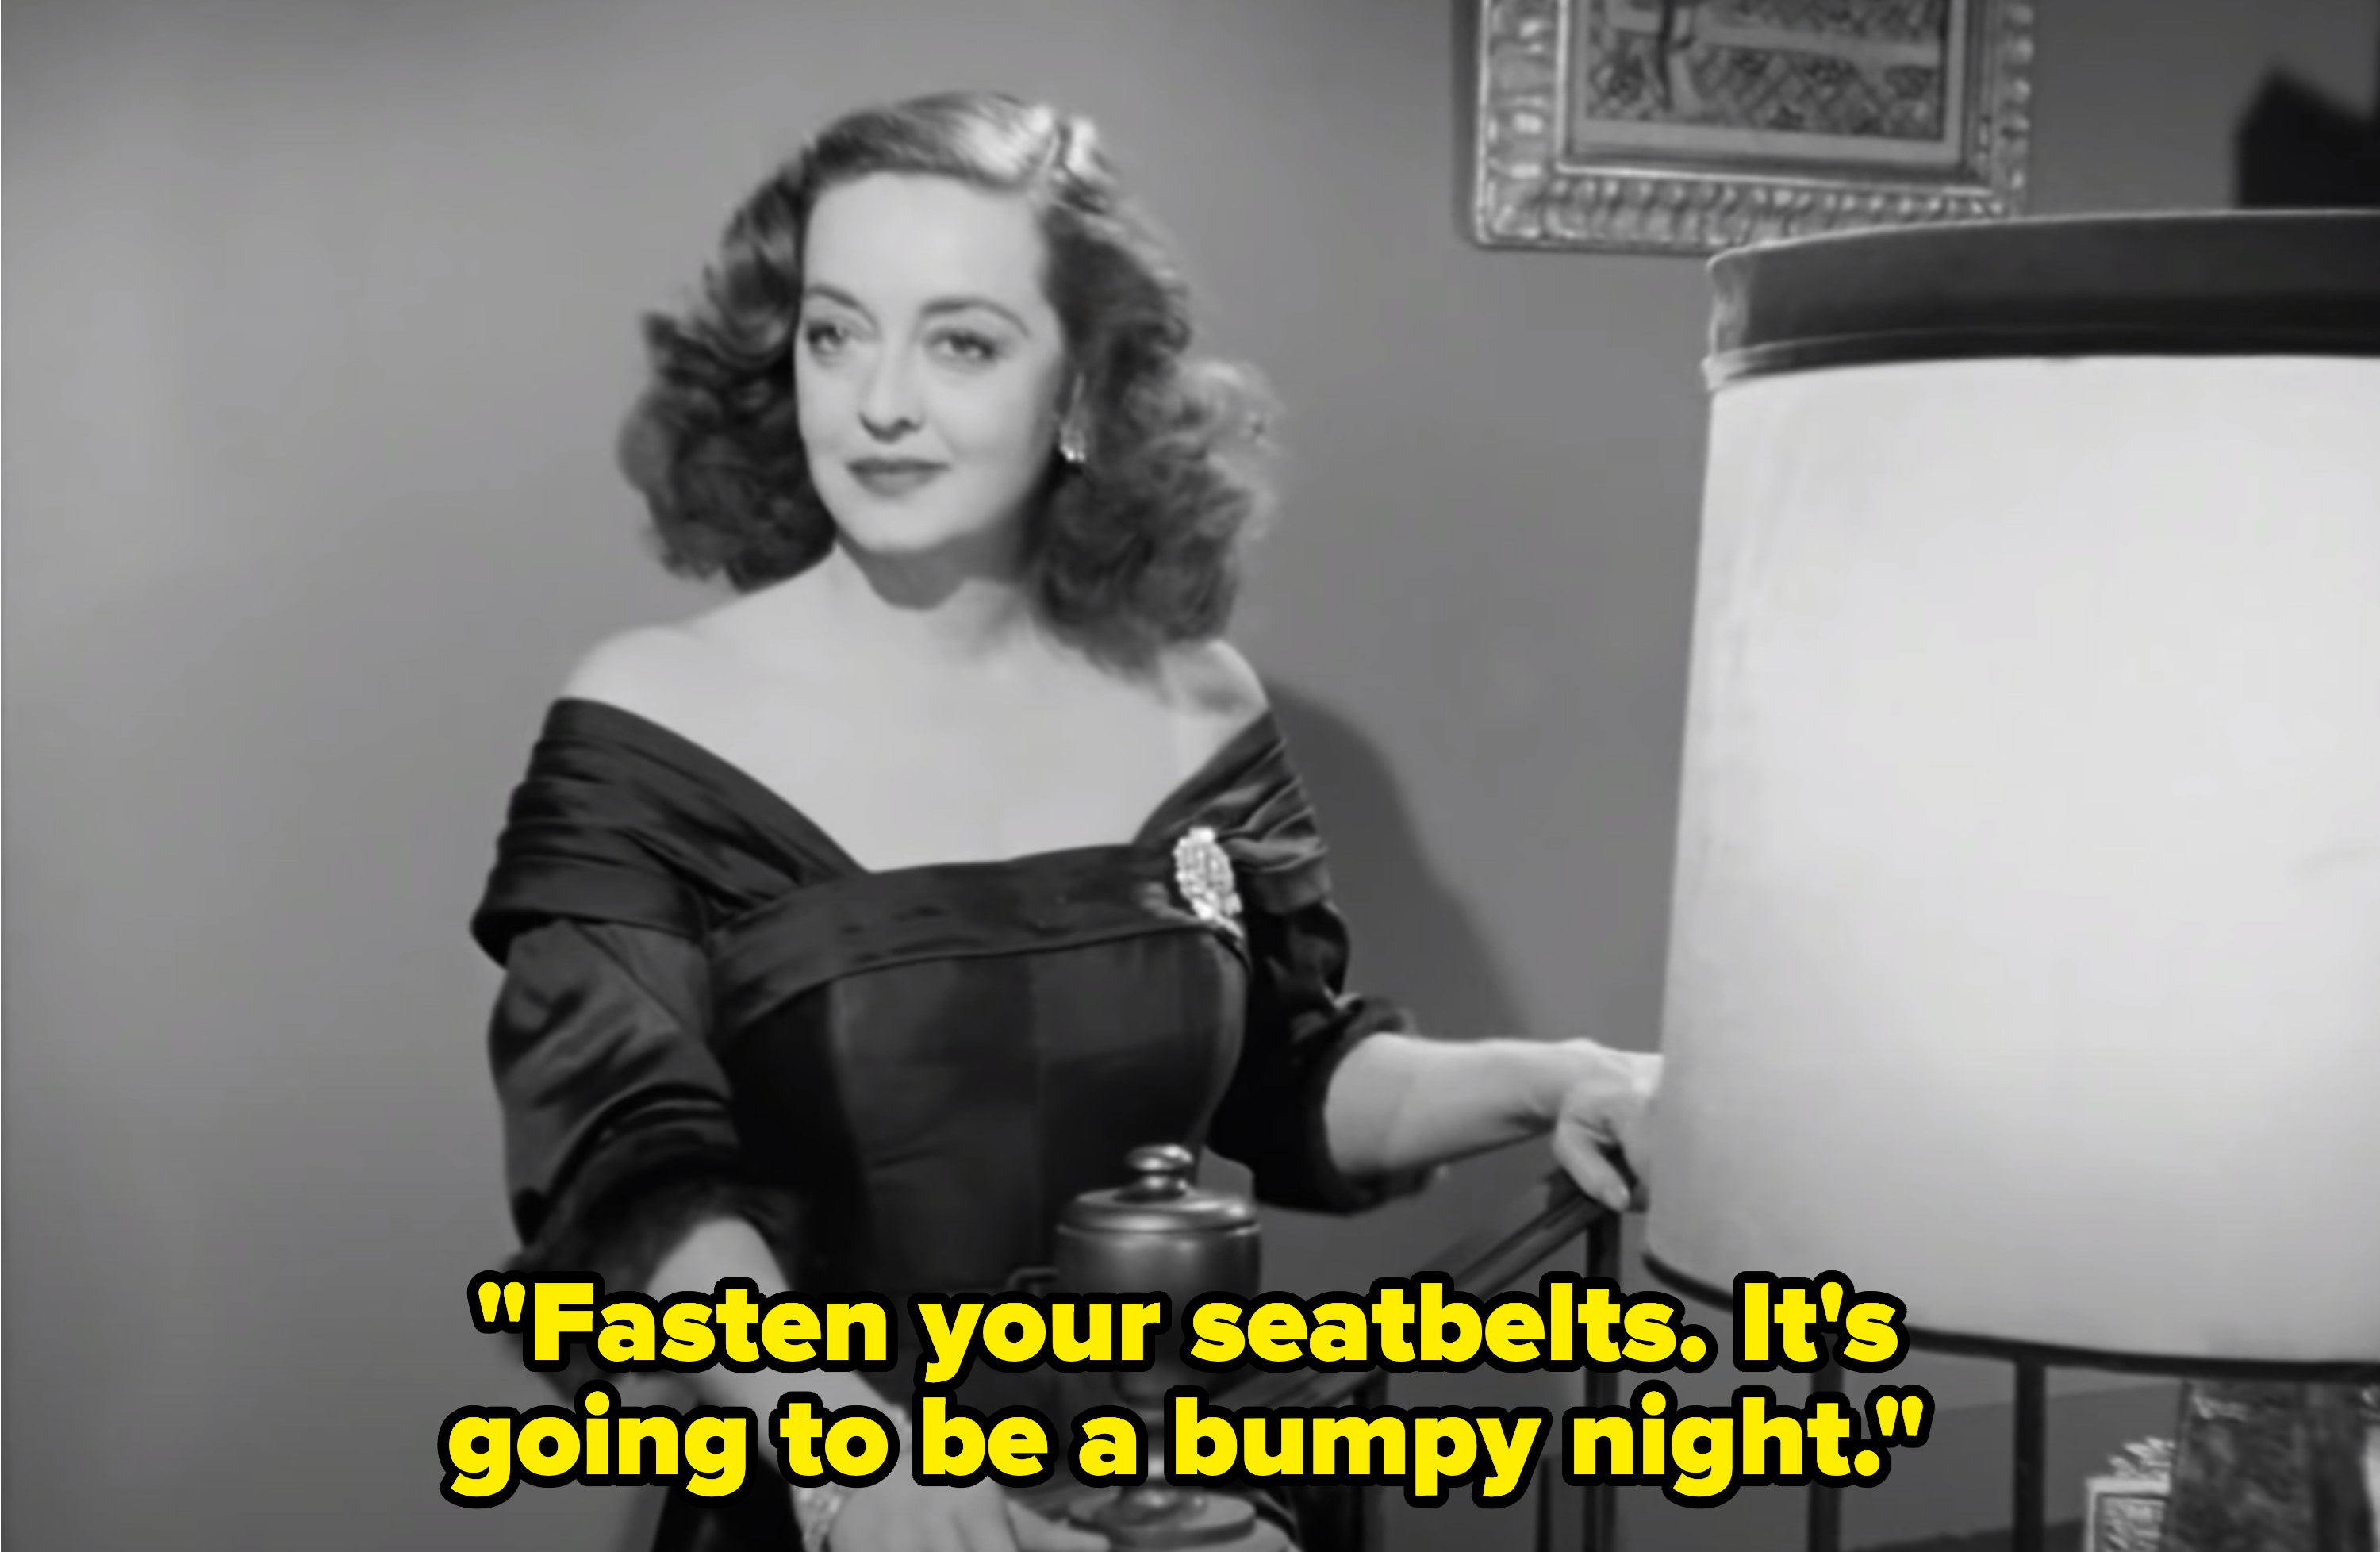 """Margo telling the party: """"Fasten your seatbelts. It's going to be a bumpy night"""""""